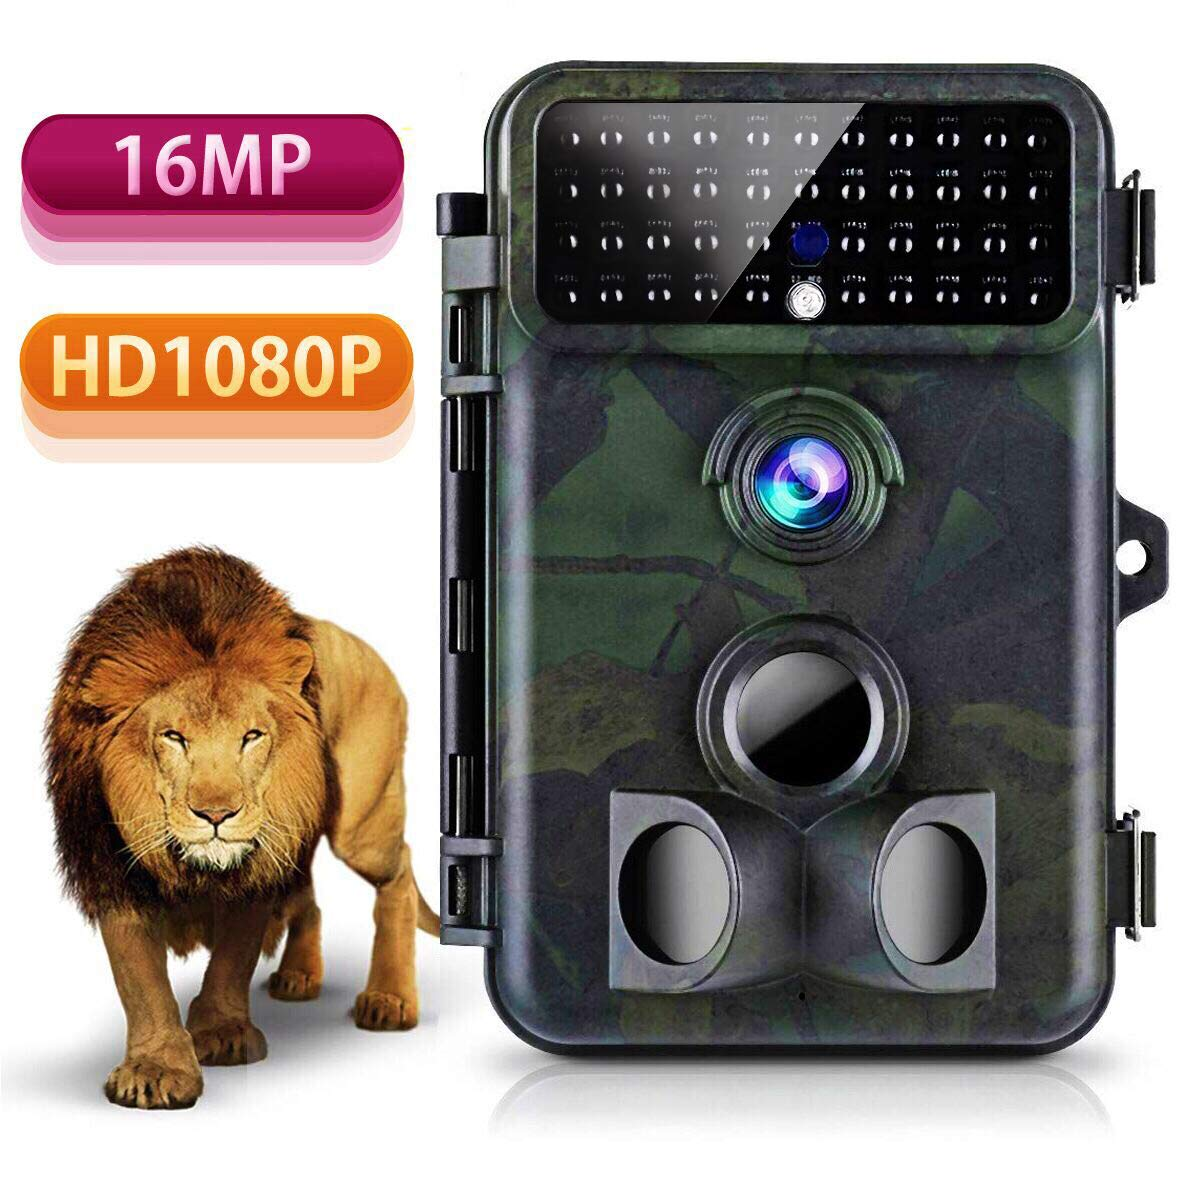 Tvird 16 MP Wildlife Trail Camera